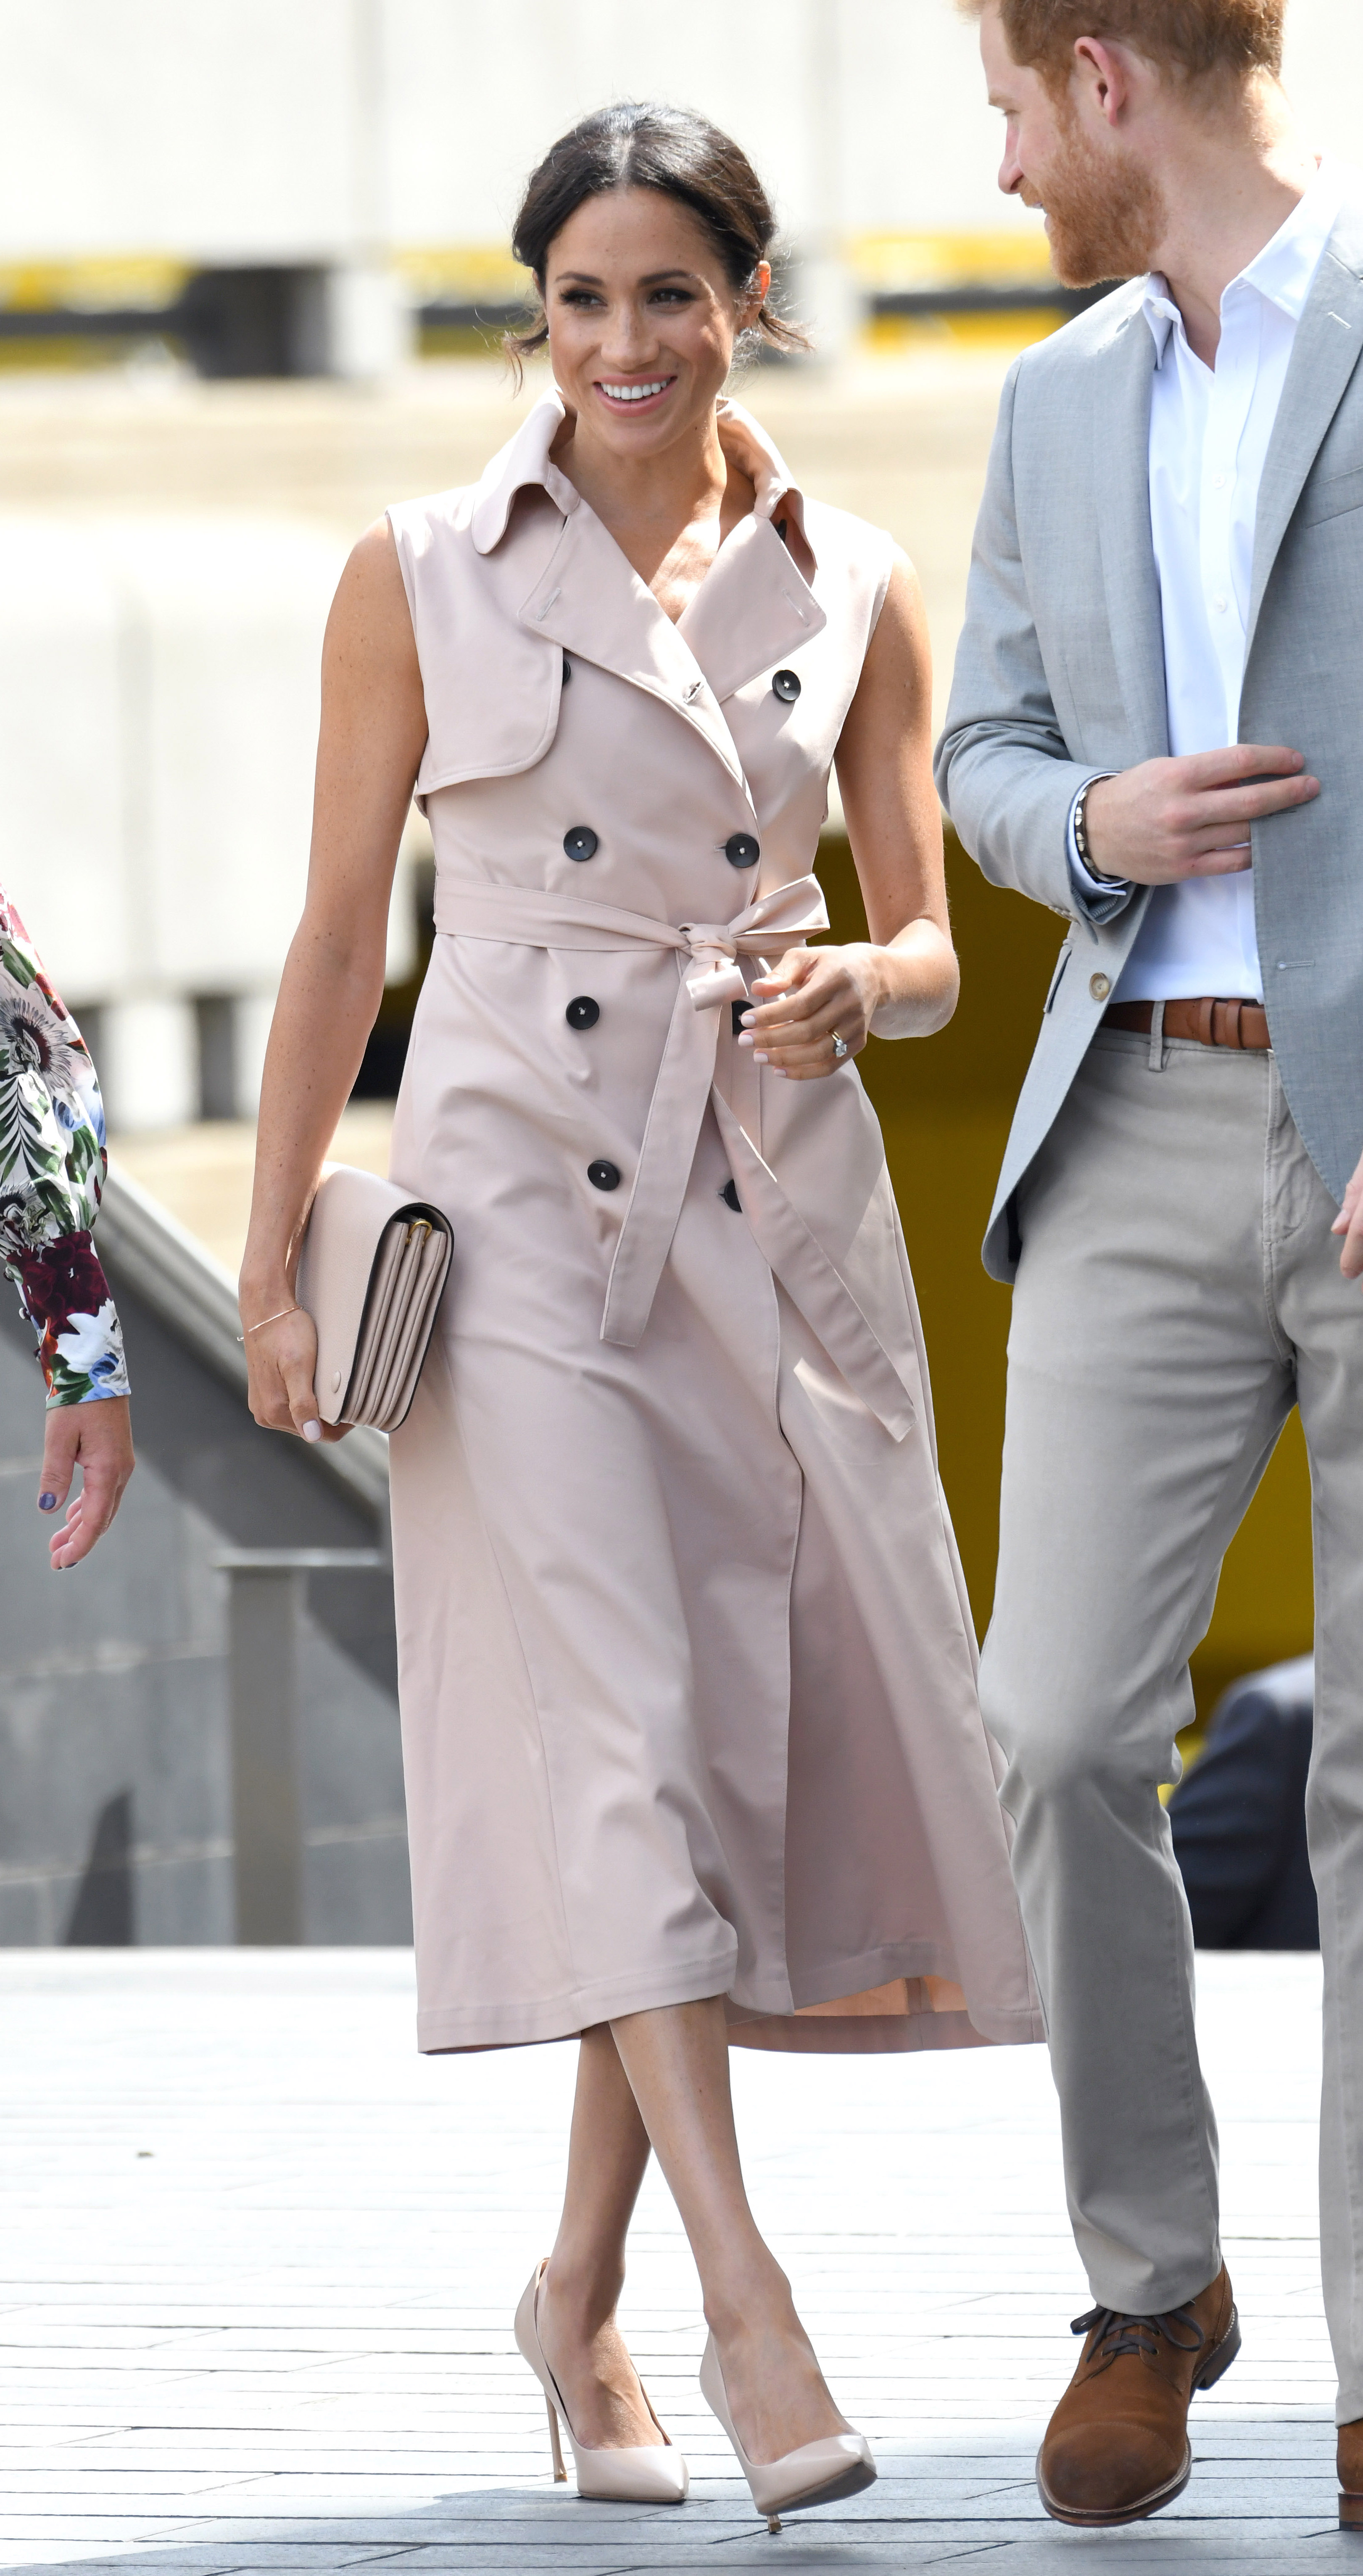 """<p><a href=""""https://style.nine.com.au/2018/07/12/09/29/meghan-markle-ireland-outfits-designers-givenchy"""" target=""""_blank"""" title=""""Meghan Markle"""" draggable=""""false"""">Meghan Markle</a> has certainly been busy with royal outings this month.</p> <p>From Prince Louis christening and her two-day visit to Dublin, to her<a href=""""https://style.nine.com.au/2018/07/15/20/20/meghan-markle-emma-watson-wimbledon"""" target=""""_blank"""" title="""" Wimbledonouting """" draggable=""""false""""> Wimbledon outing </a>with sister in law <a href=""""https://style.nine.com.au/2018/07/16/13/17/kate-middleton-stylish-wimbledon-outfits"""" target=""""_blank"""" title=""""Kate Middleton"""" draggable=""""false"""">Kate Middleton</a>, the newlywed has nailed it in the style stakes on every occasion.</p> <p>Her latest outing is no different.</p> <p>The former actress stepped out overnight to the Nelson Mandela Centenary Exhibitionwith husband Prince Harry at the Southbank Centre in London, wearing a sleeveless trench dress from Canadian ready-to-wear label, NONIE.</p> <p>The blush-coloured dress featured bold black buttons, a structured collar and a loose sash tied at the waist. She complimented her look with a matching pink Mulberry clutch, nude pumps, and wore her nails the same shade of blush as her dress.</p> <p>Nina Kharey, founder and creative director of NONIE, told <em>People</em> that she was thrilled to see the <em>Suits</em> star in her design.</p> <p>""""Seeing Meghan Markle wear theNONIE Trench Dresstoday with such elegance and grace is beyond exciting!"""" she gushed. """"Her continuous support of Canadian brands is remarkable, and it is a true honor to be the first Canadian based ready-to-wear designer she has worn since her wedding earlier this year.""""</p> <p>The $1,118 dress wasn't a new purchase from the 36 year-old. Markle brought the dress from the brand's Spring/Summer 2018 collection back in 2017 while still living in Toronto.</p> <p>Markle's latest look is one in a long line of sartorial stand-outs from the stylish royal. Clic"""